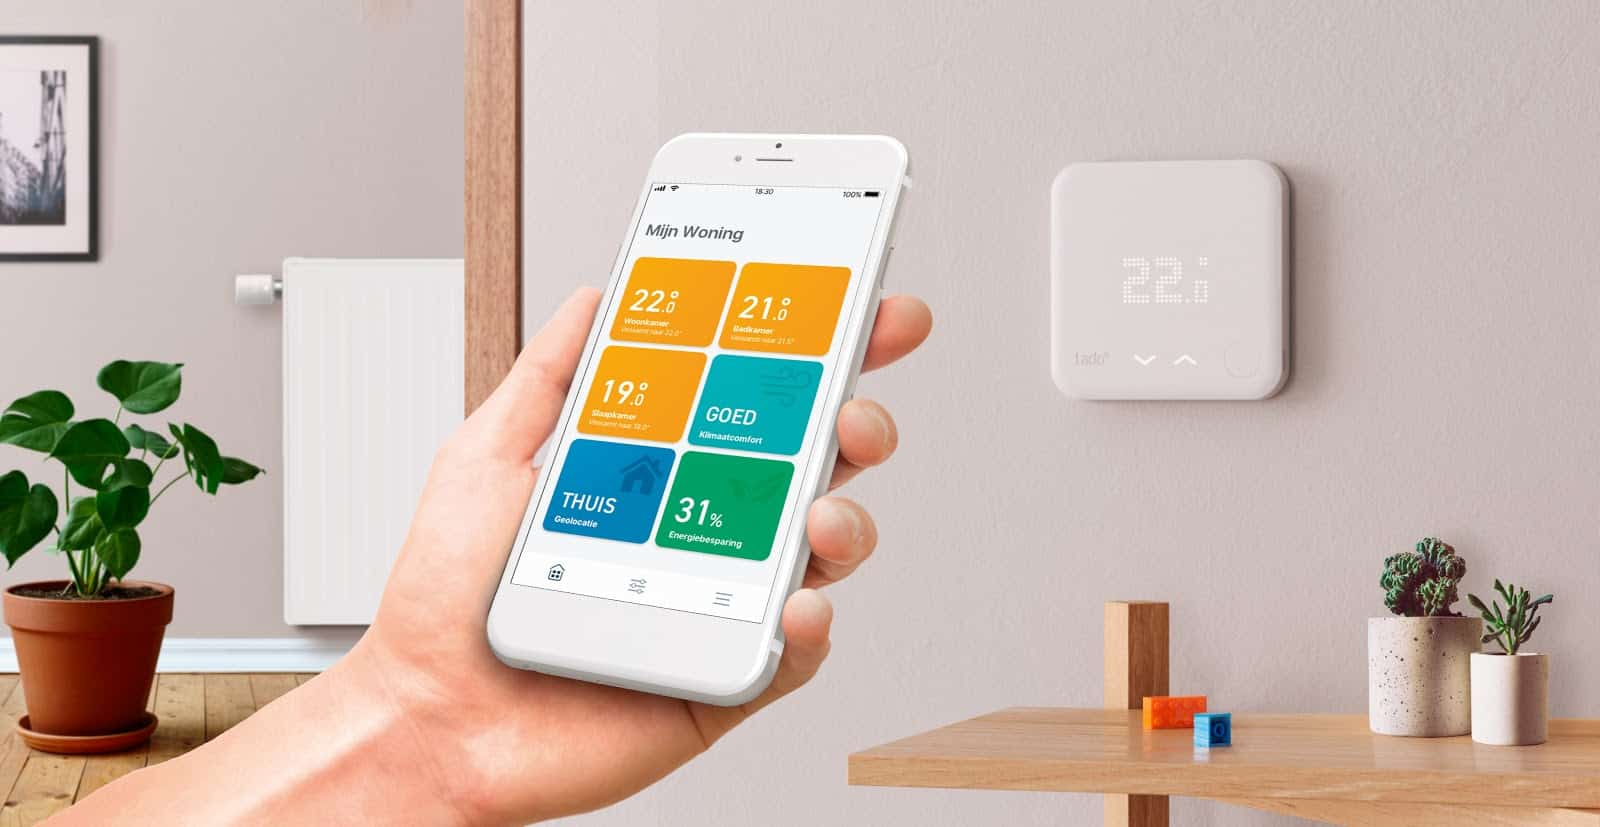 Eneco Stadsverwarming Thermostaat Tado Slimme Thermostaat V3 Review Nu 40 00 Korting